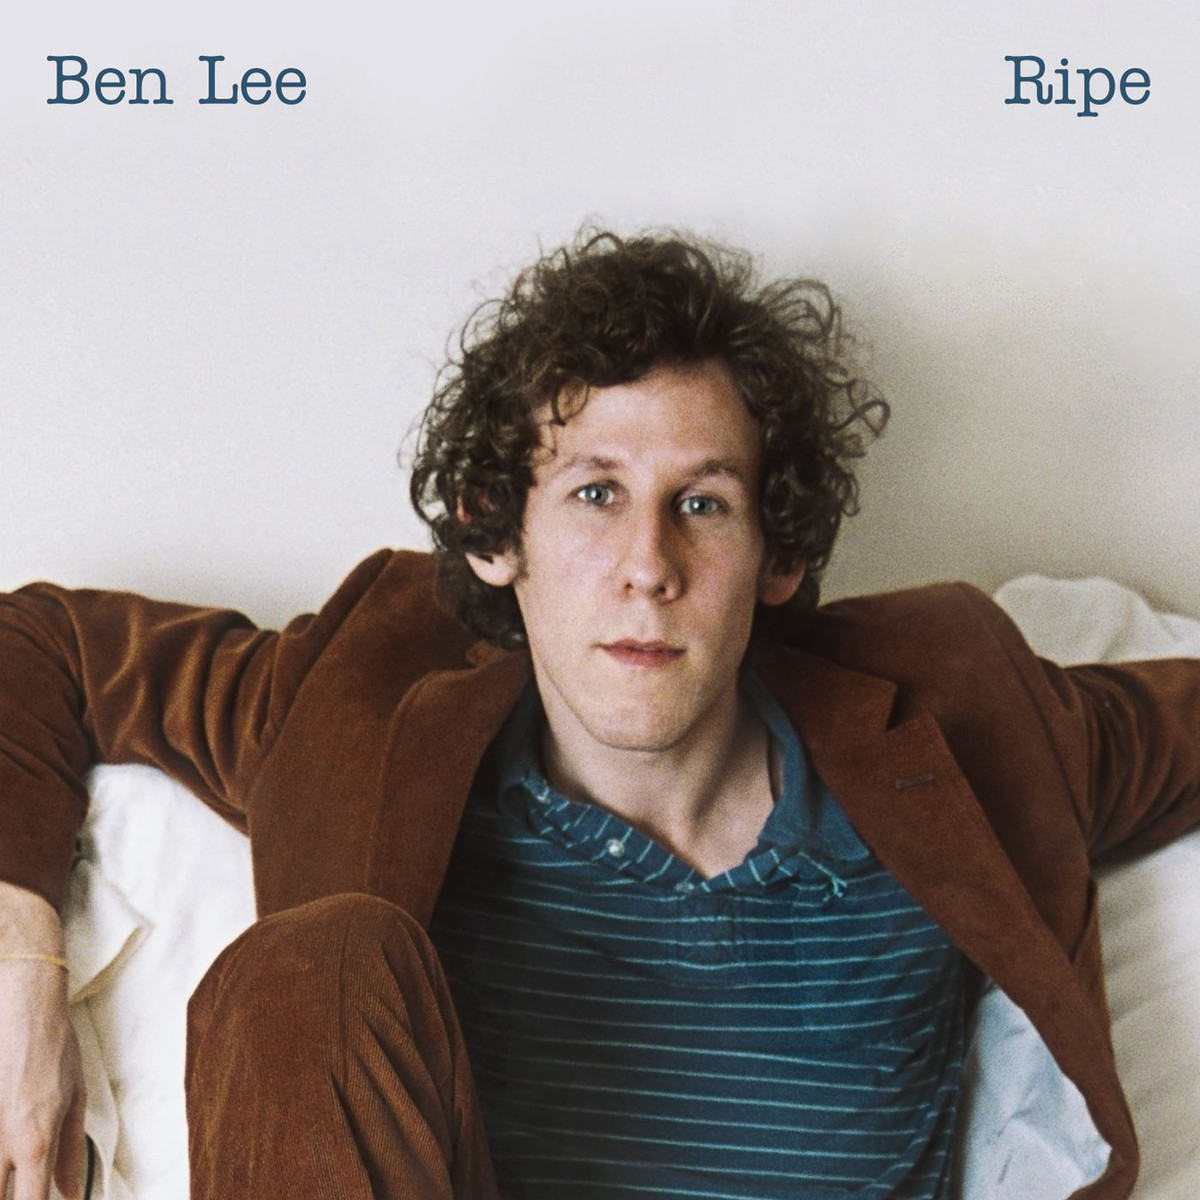 Best Ben Lee Songs List | Top Ben Lee Tracks Ranked